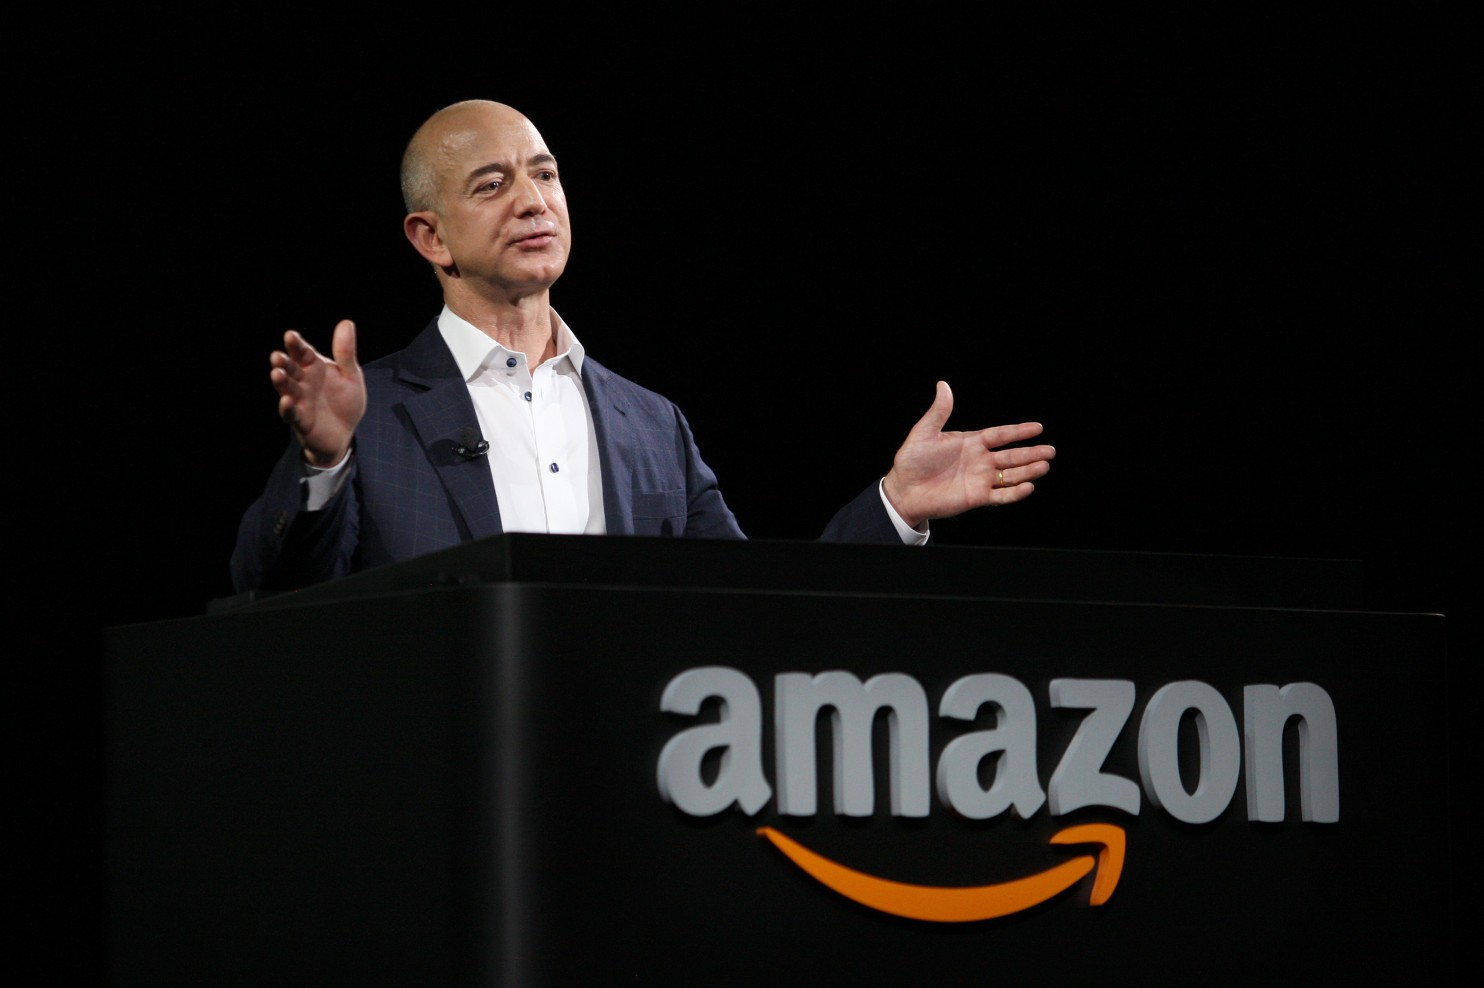 7 Insightful Quotes from Amazon's Letter to Shareholders